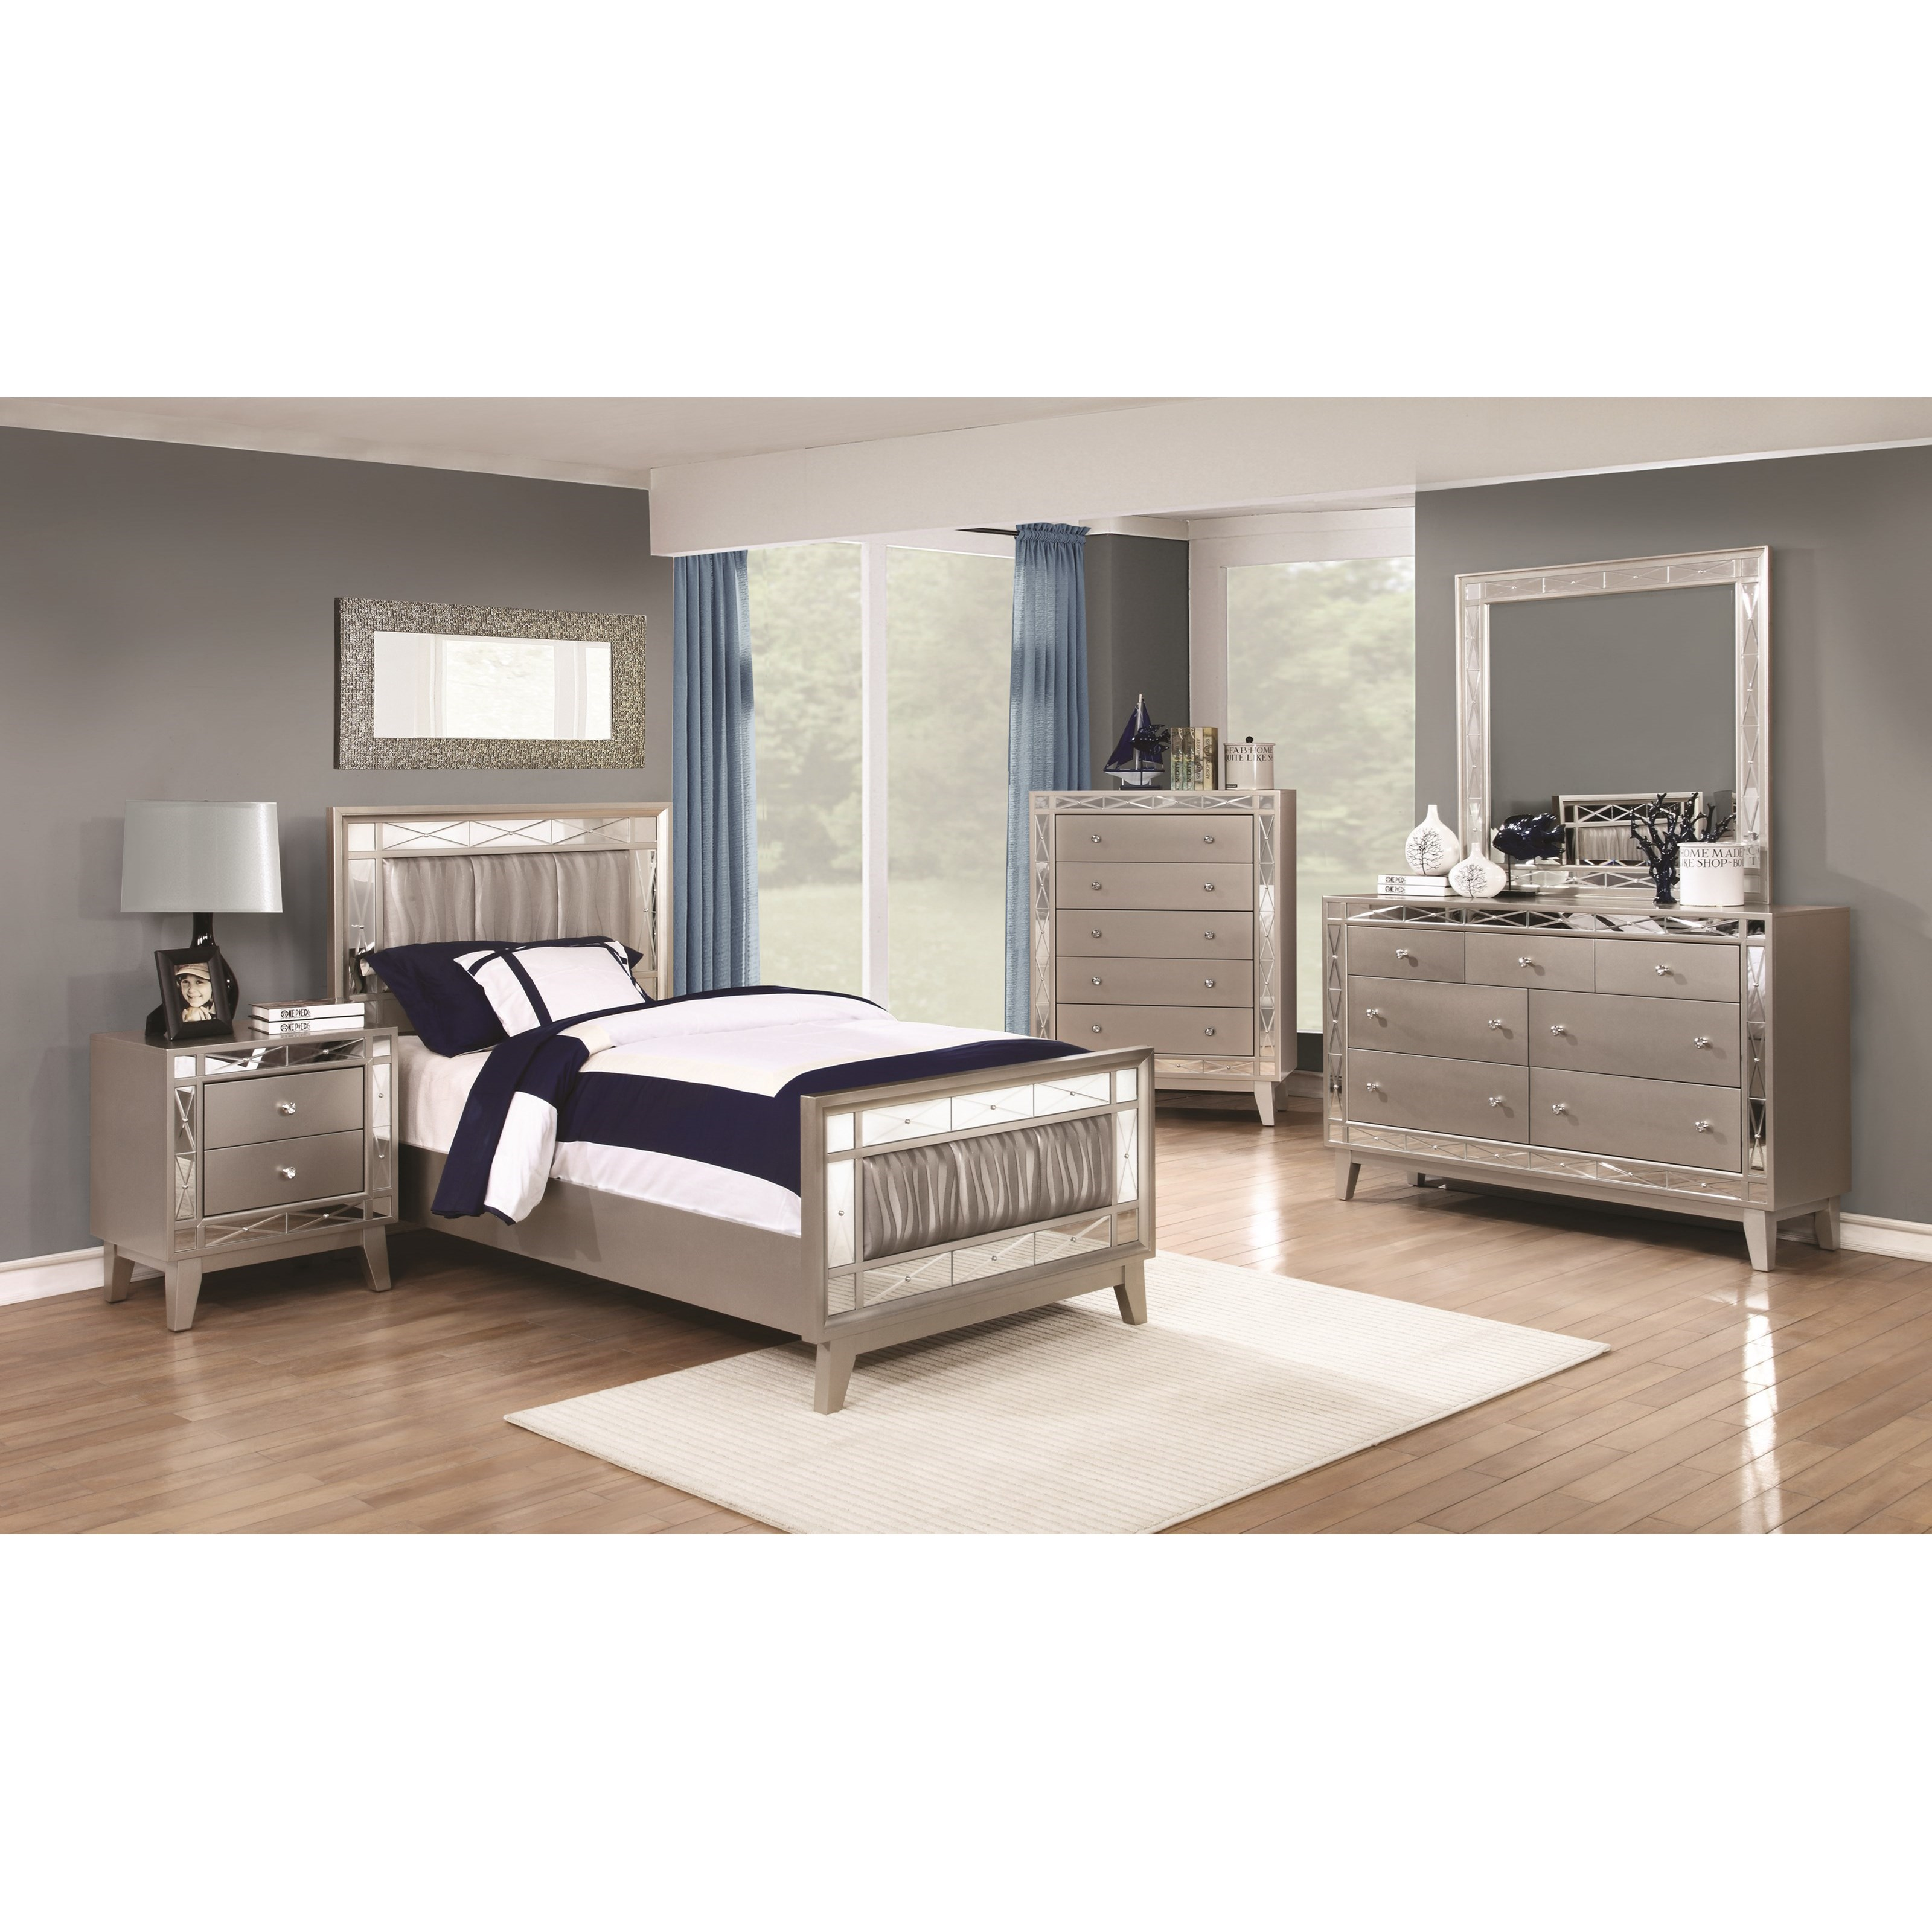 Coaster Leighton Full Bedroom Group - Item Number: 204920 F Bedroom Group 1